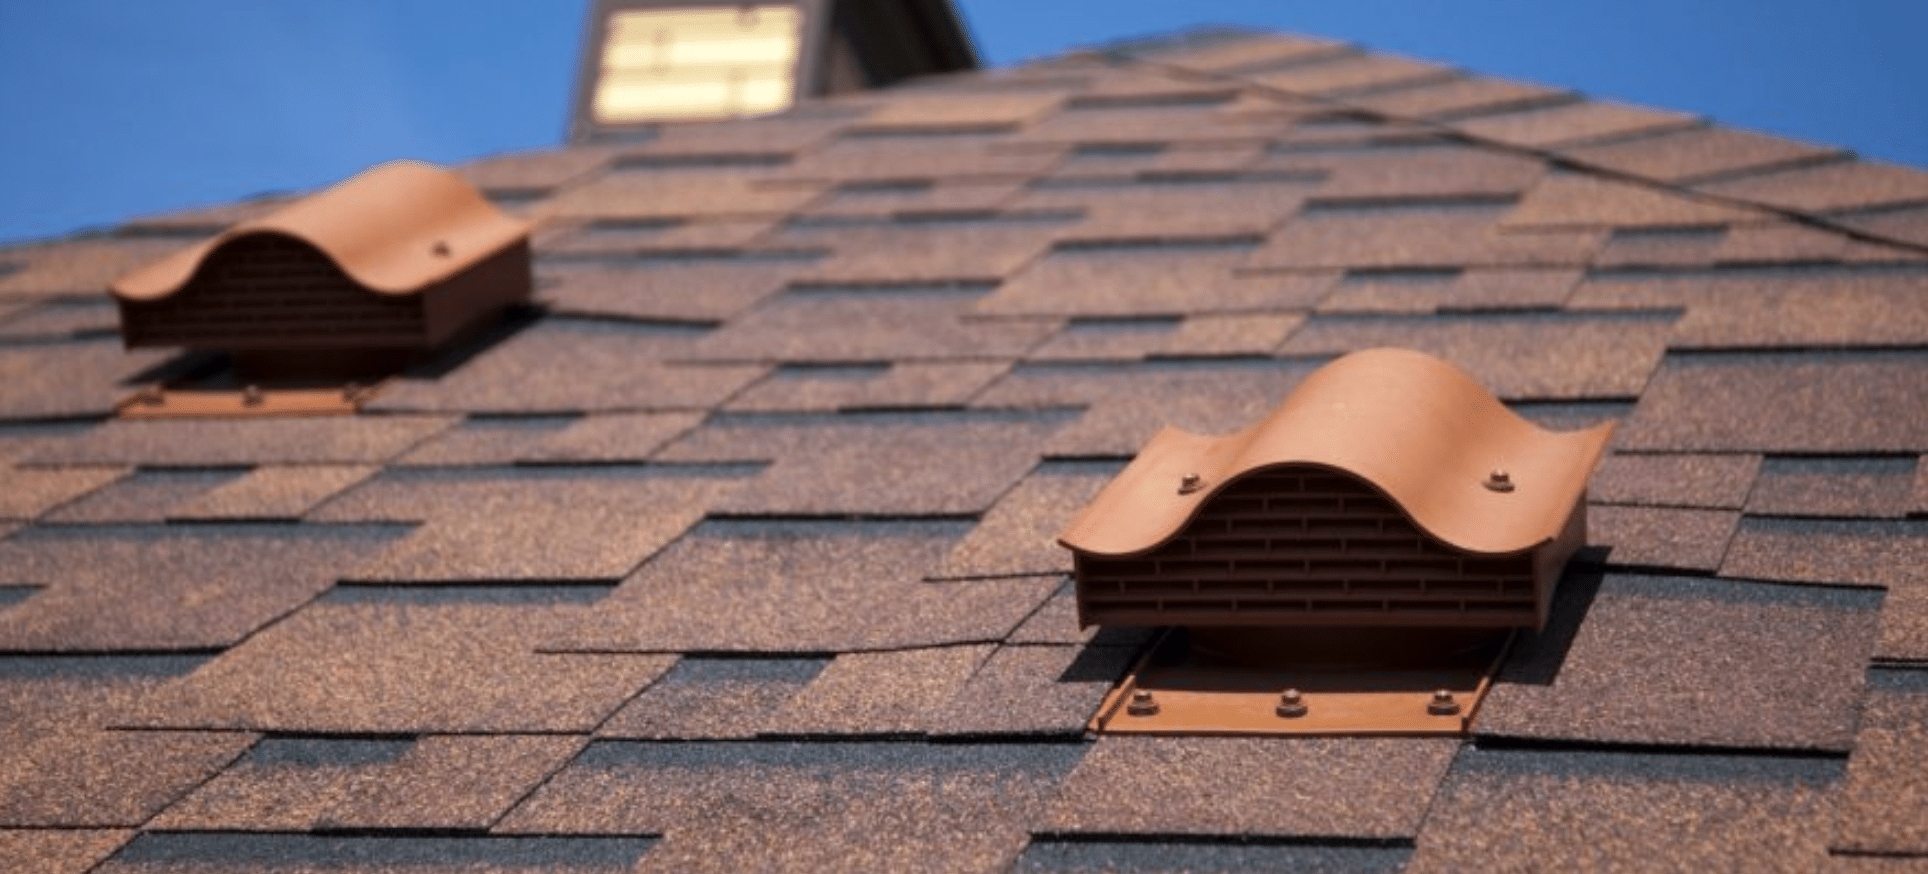 Why Proper Roof Ventilation is So Important